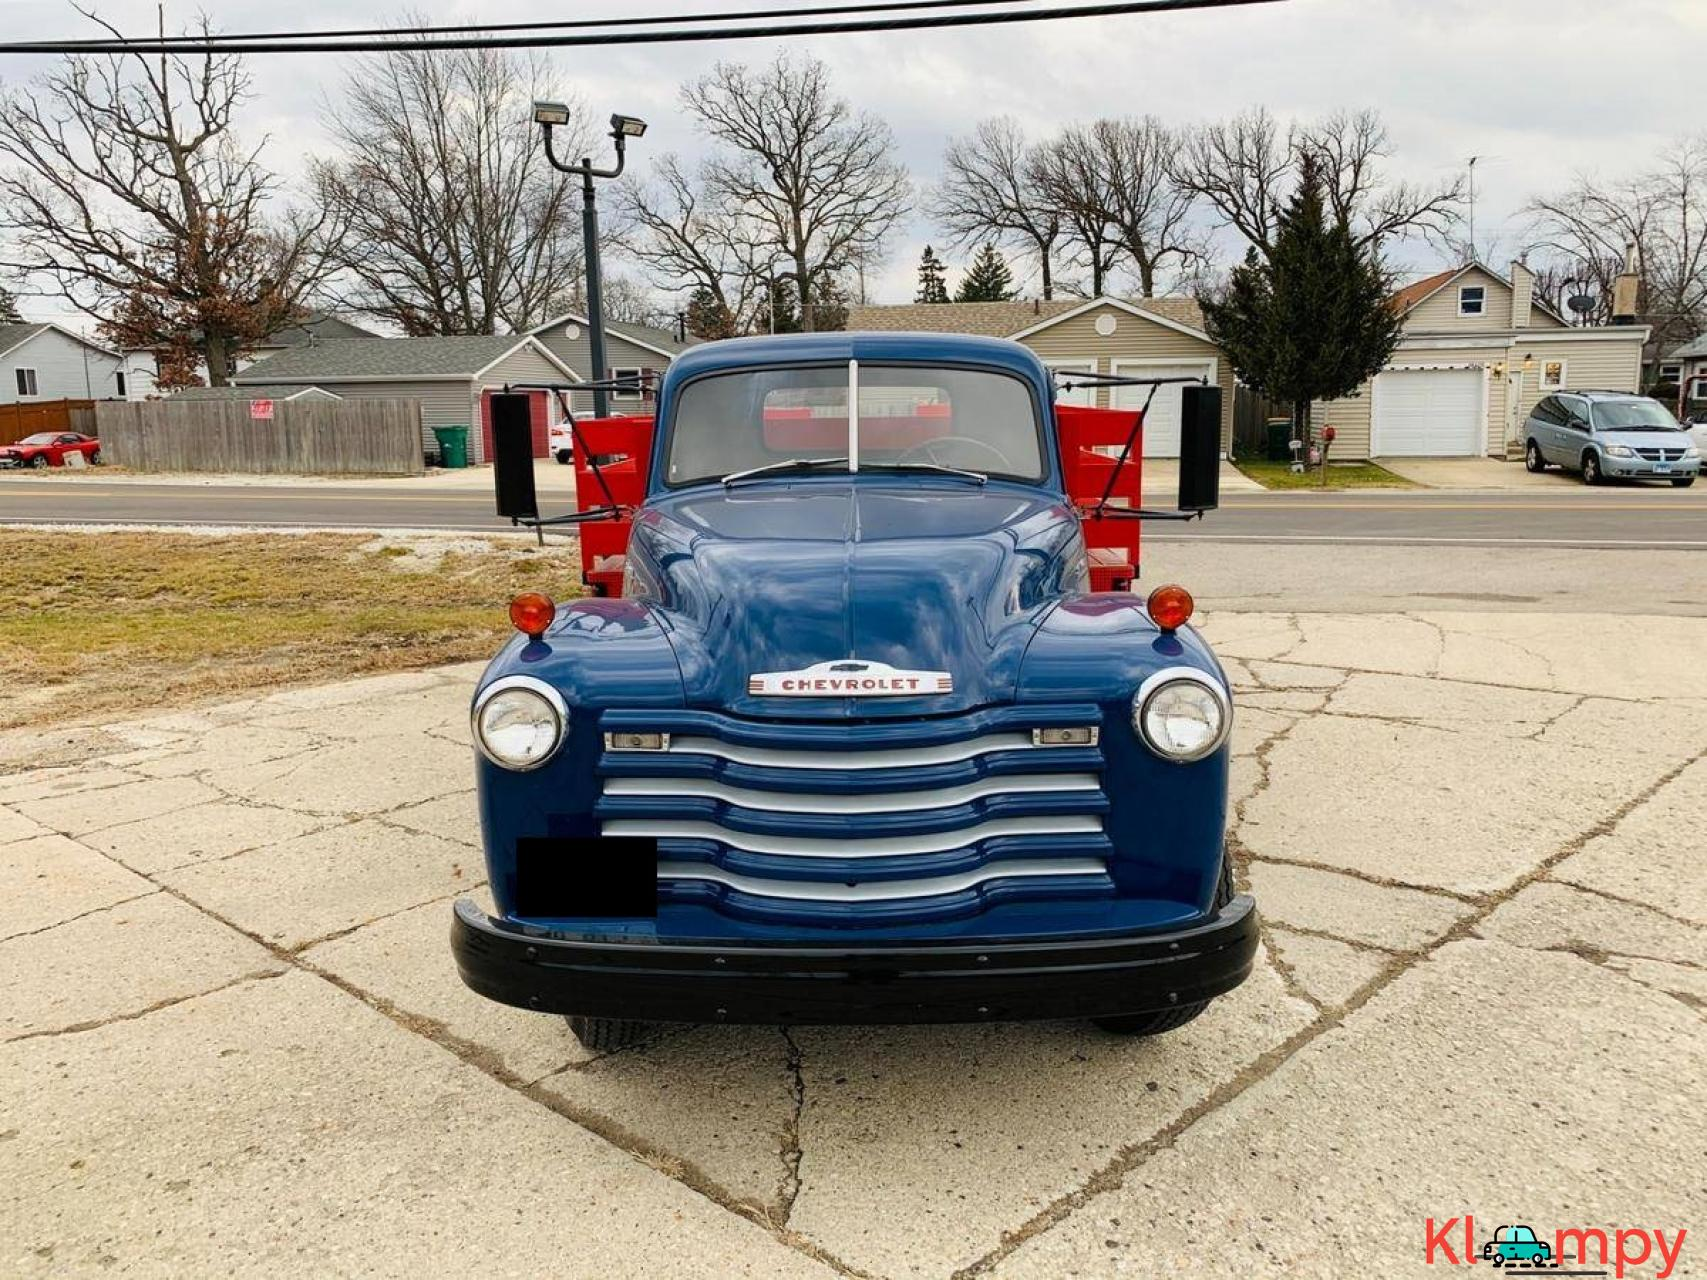 1951 Chevrolet Flat Bed Truck 235  6 CYL - 2/20